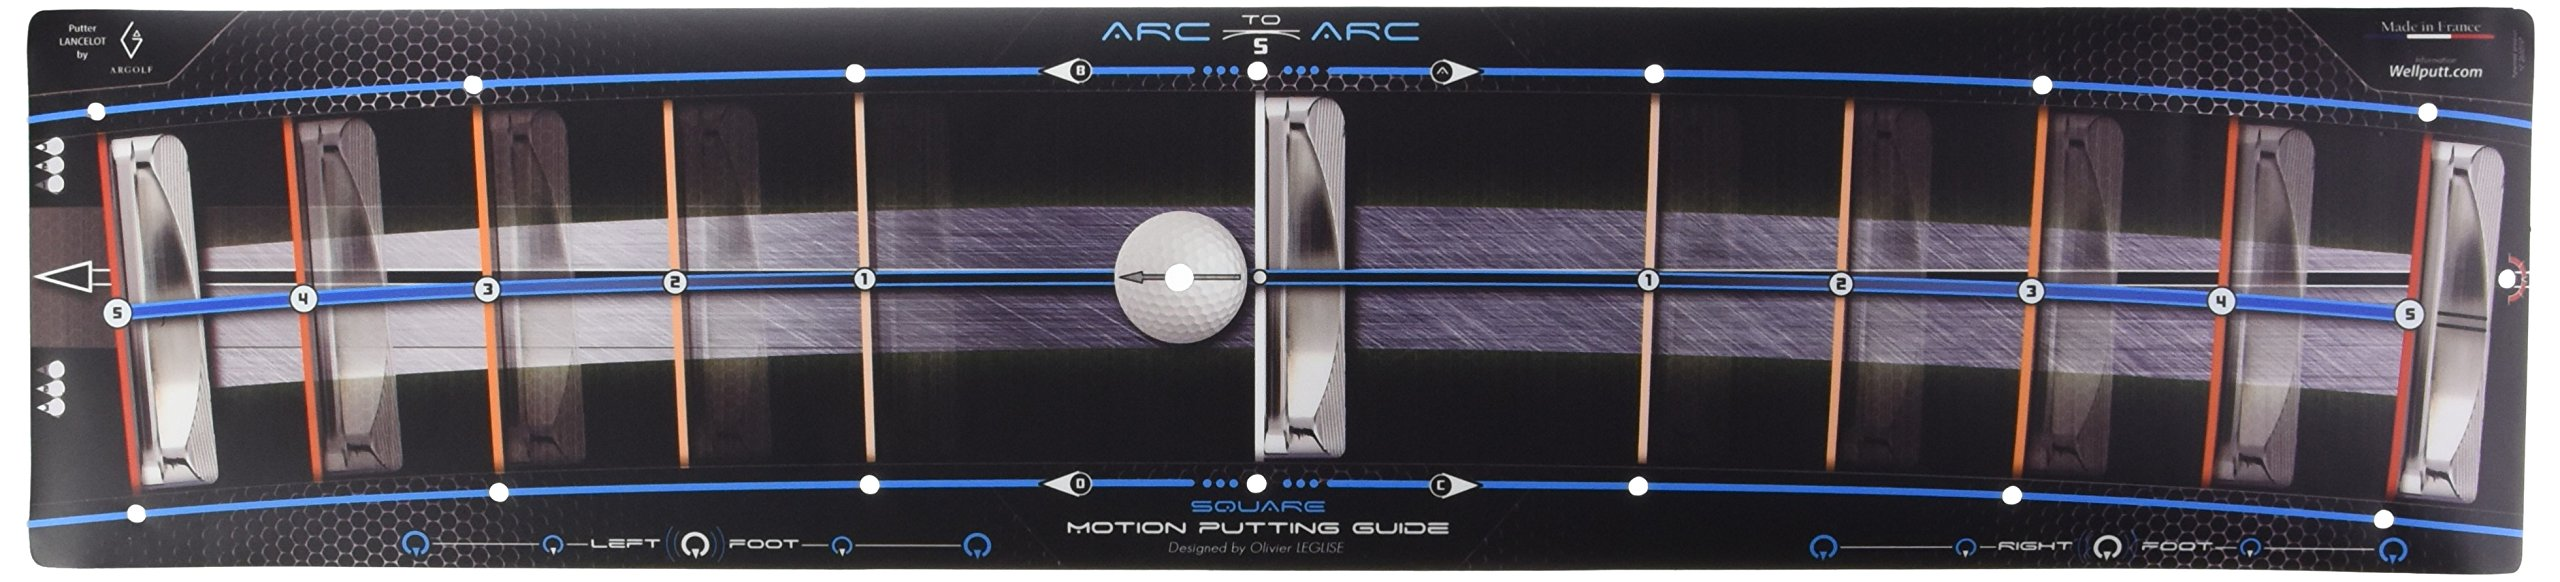 Wellingputt Arc To Arc Golf Training Aid - Square by WellPutt Golf (Image #1)